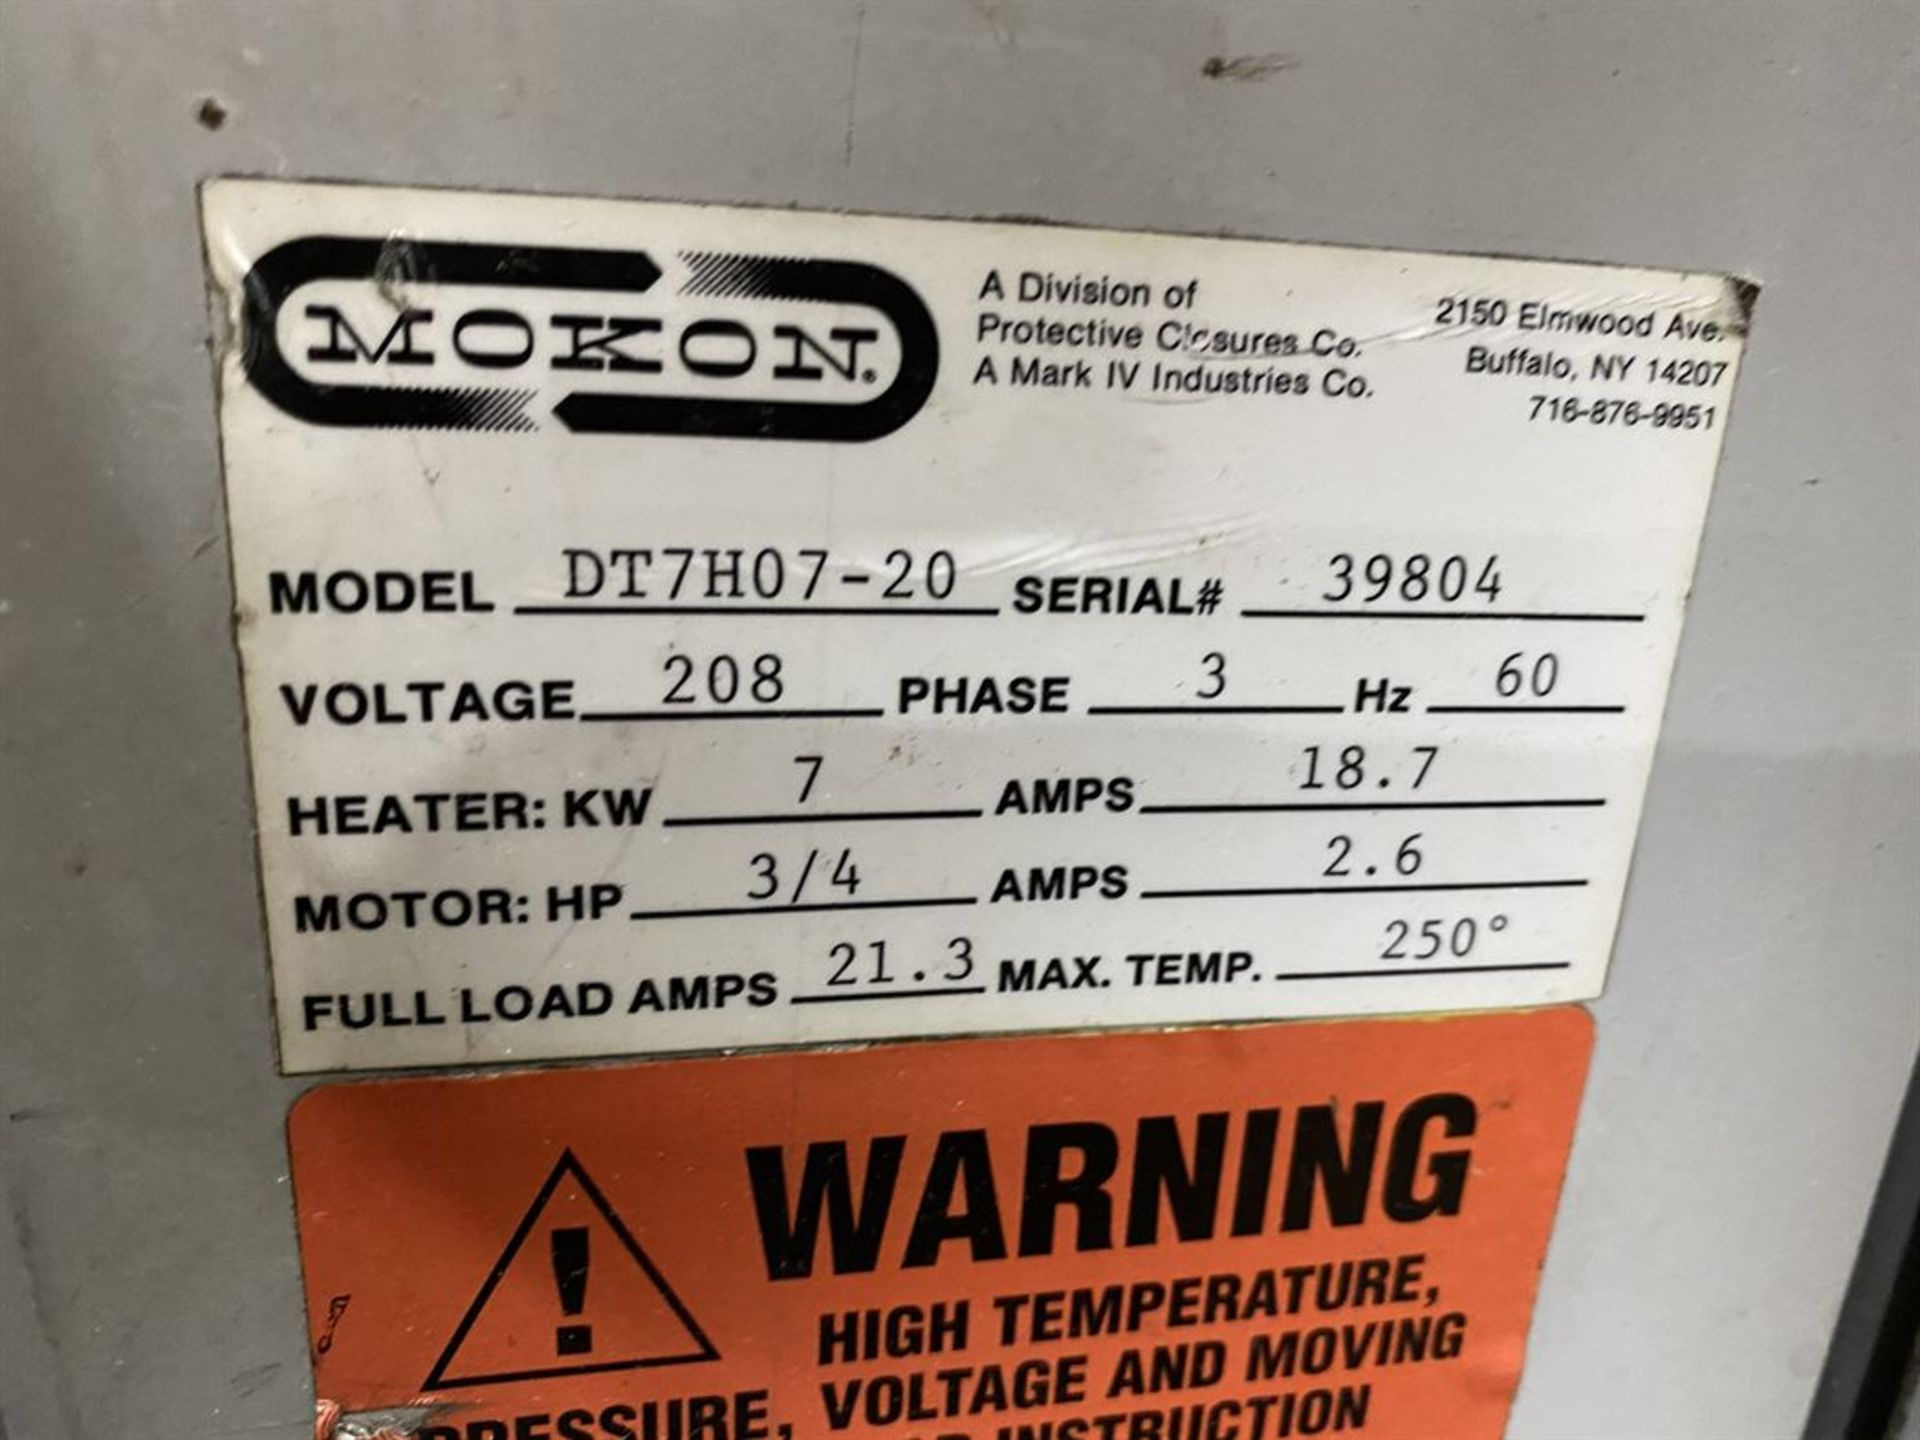 Lot 243 - Mokon DT7H07-20 Temperature Control, s/n 39804